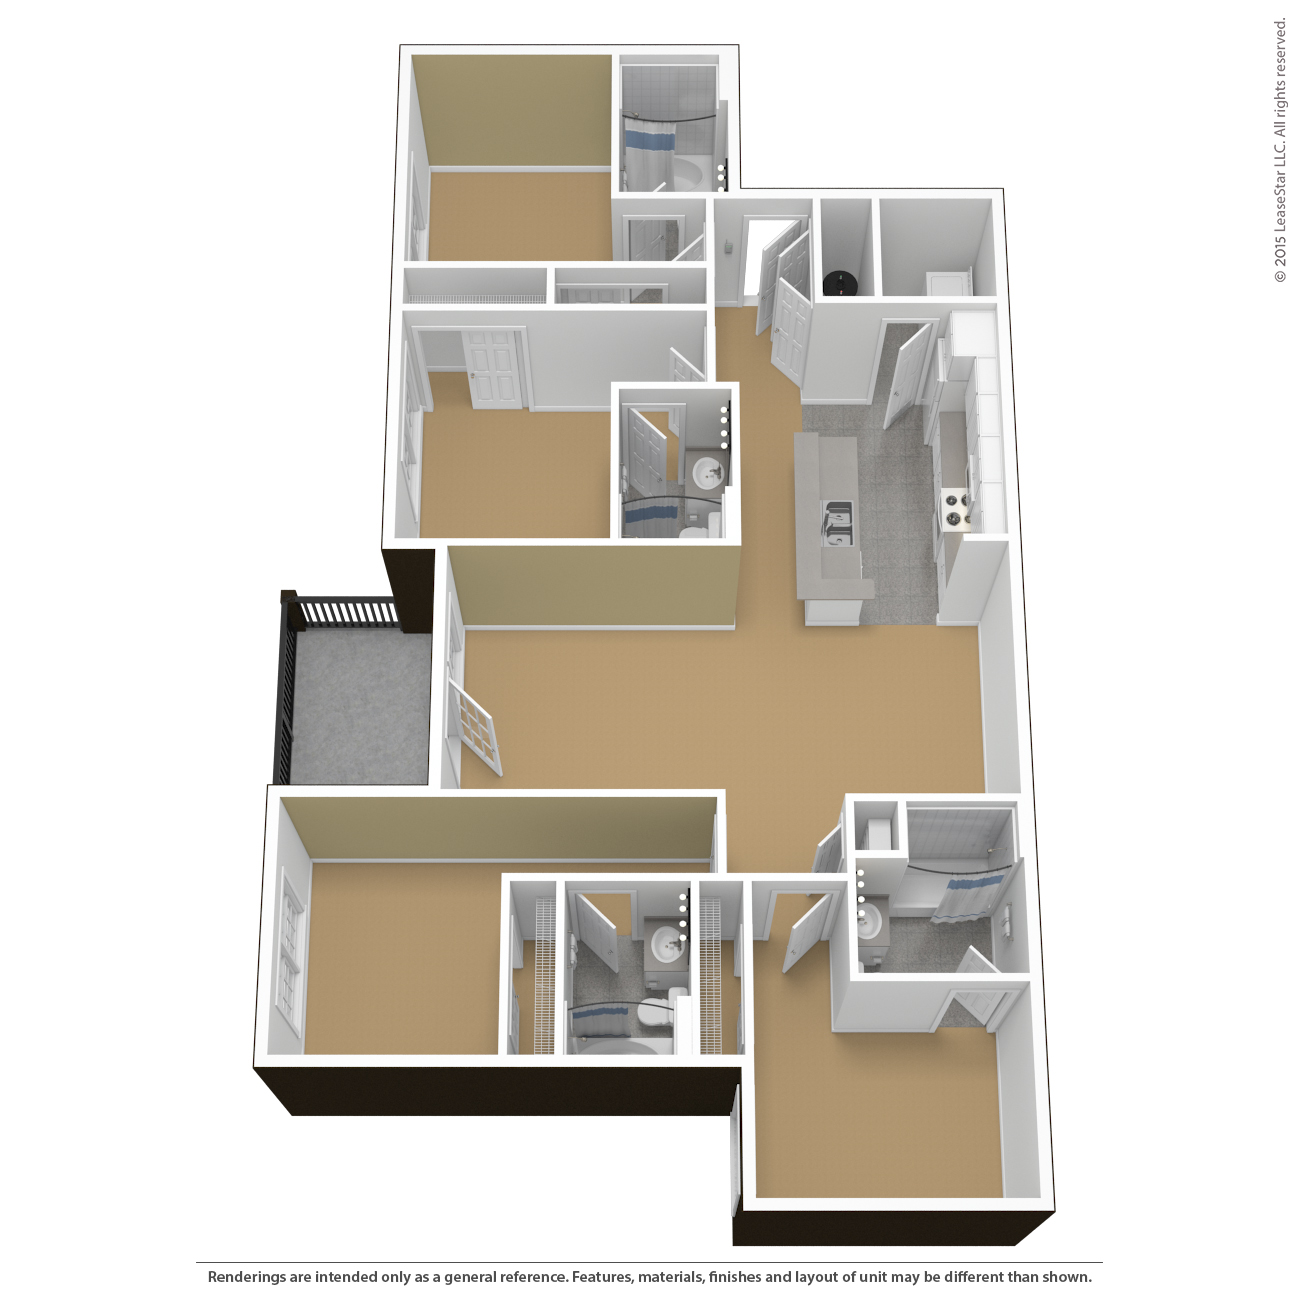 CTY 4 Bedroom 4 Bathroom   unfurnished. Floor Plans   Virtual Tours   The Courtyards